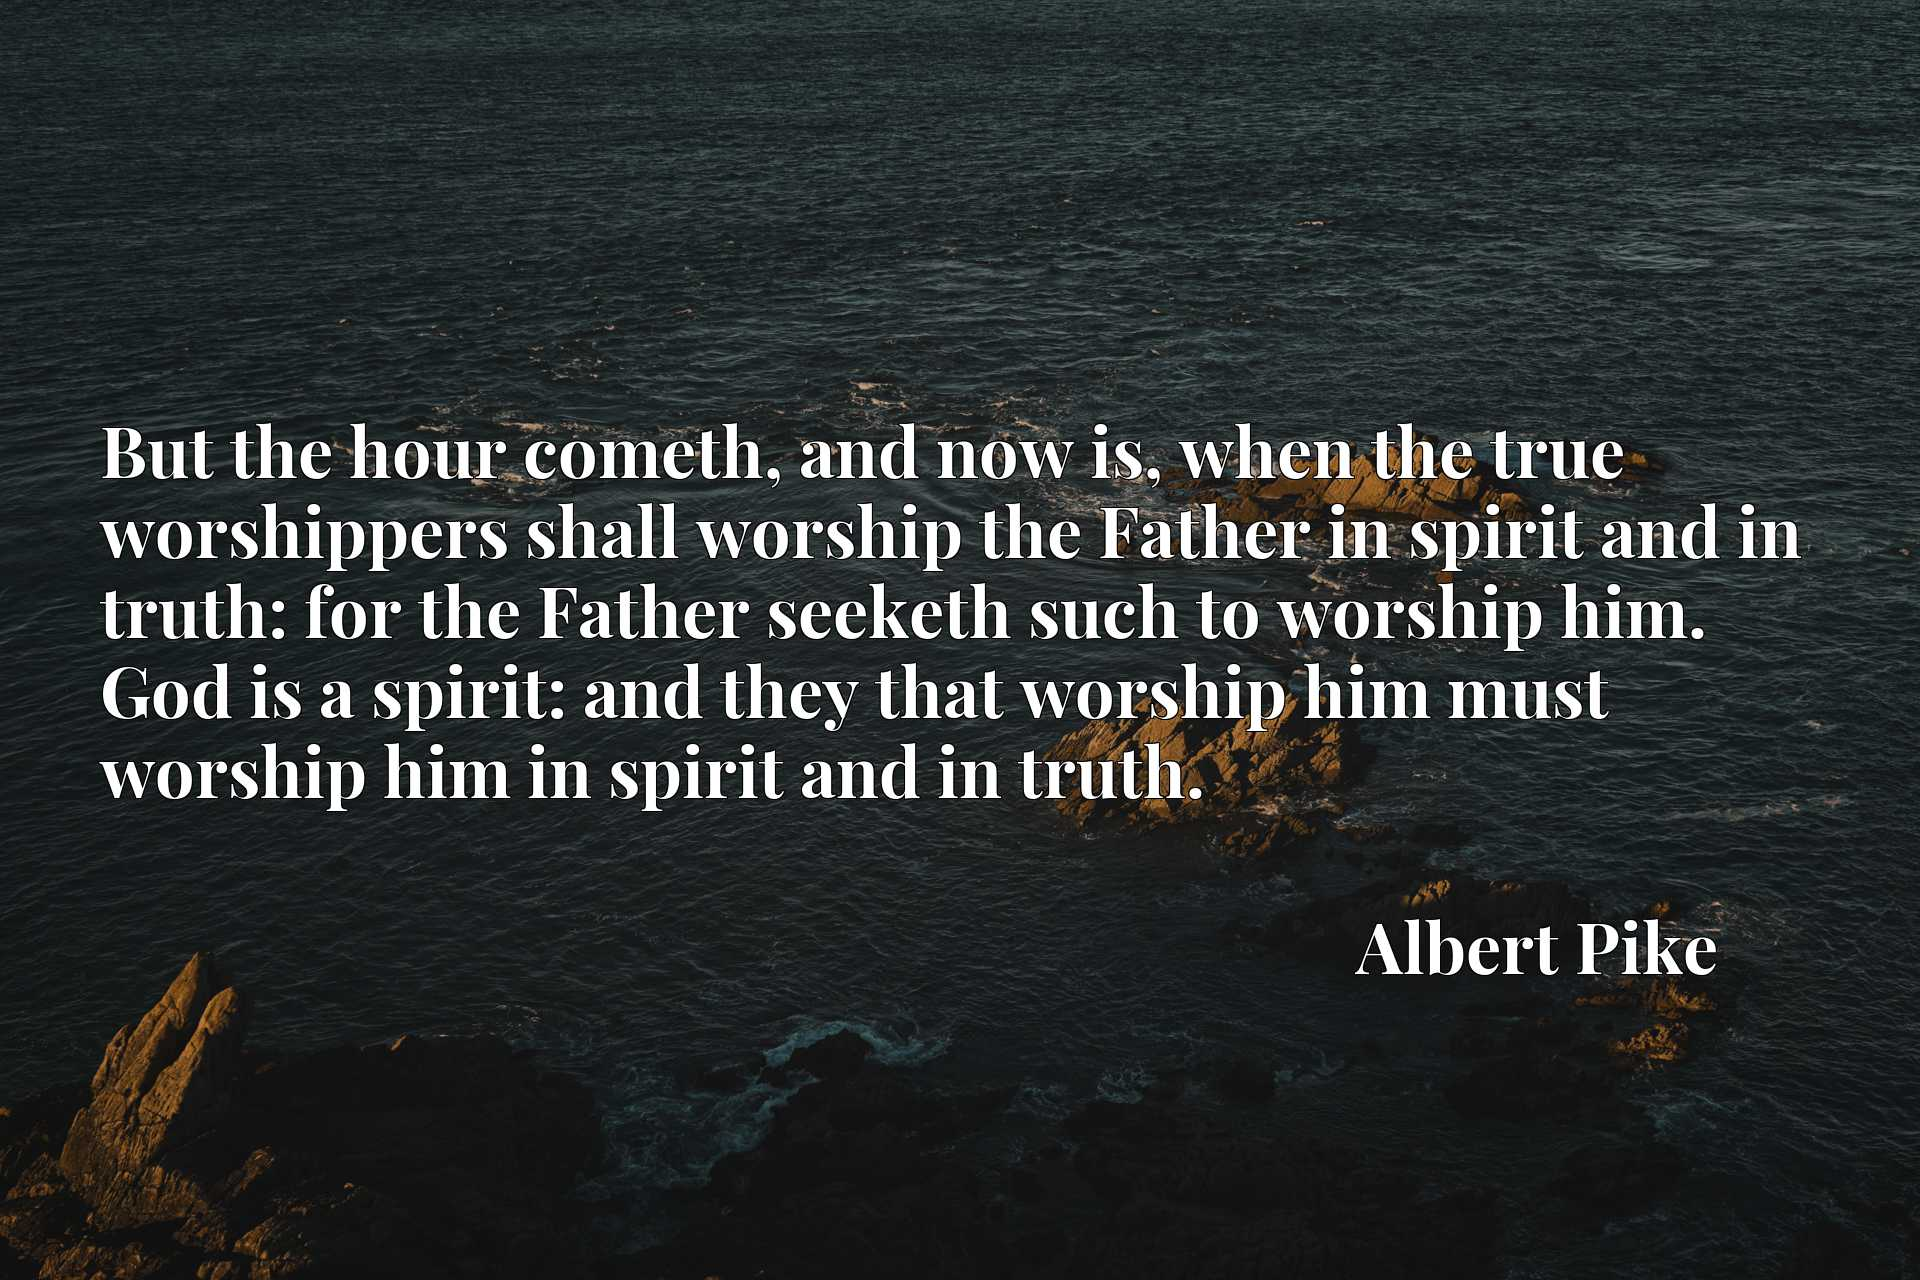 But the hour cometh, and now is, when the true worshippers shall worship the Father in spirit and in truth: for the Father seeketh such to worship him. God is a spirit: and they that worship him must worship him in spirit and in truth.